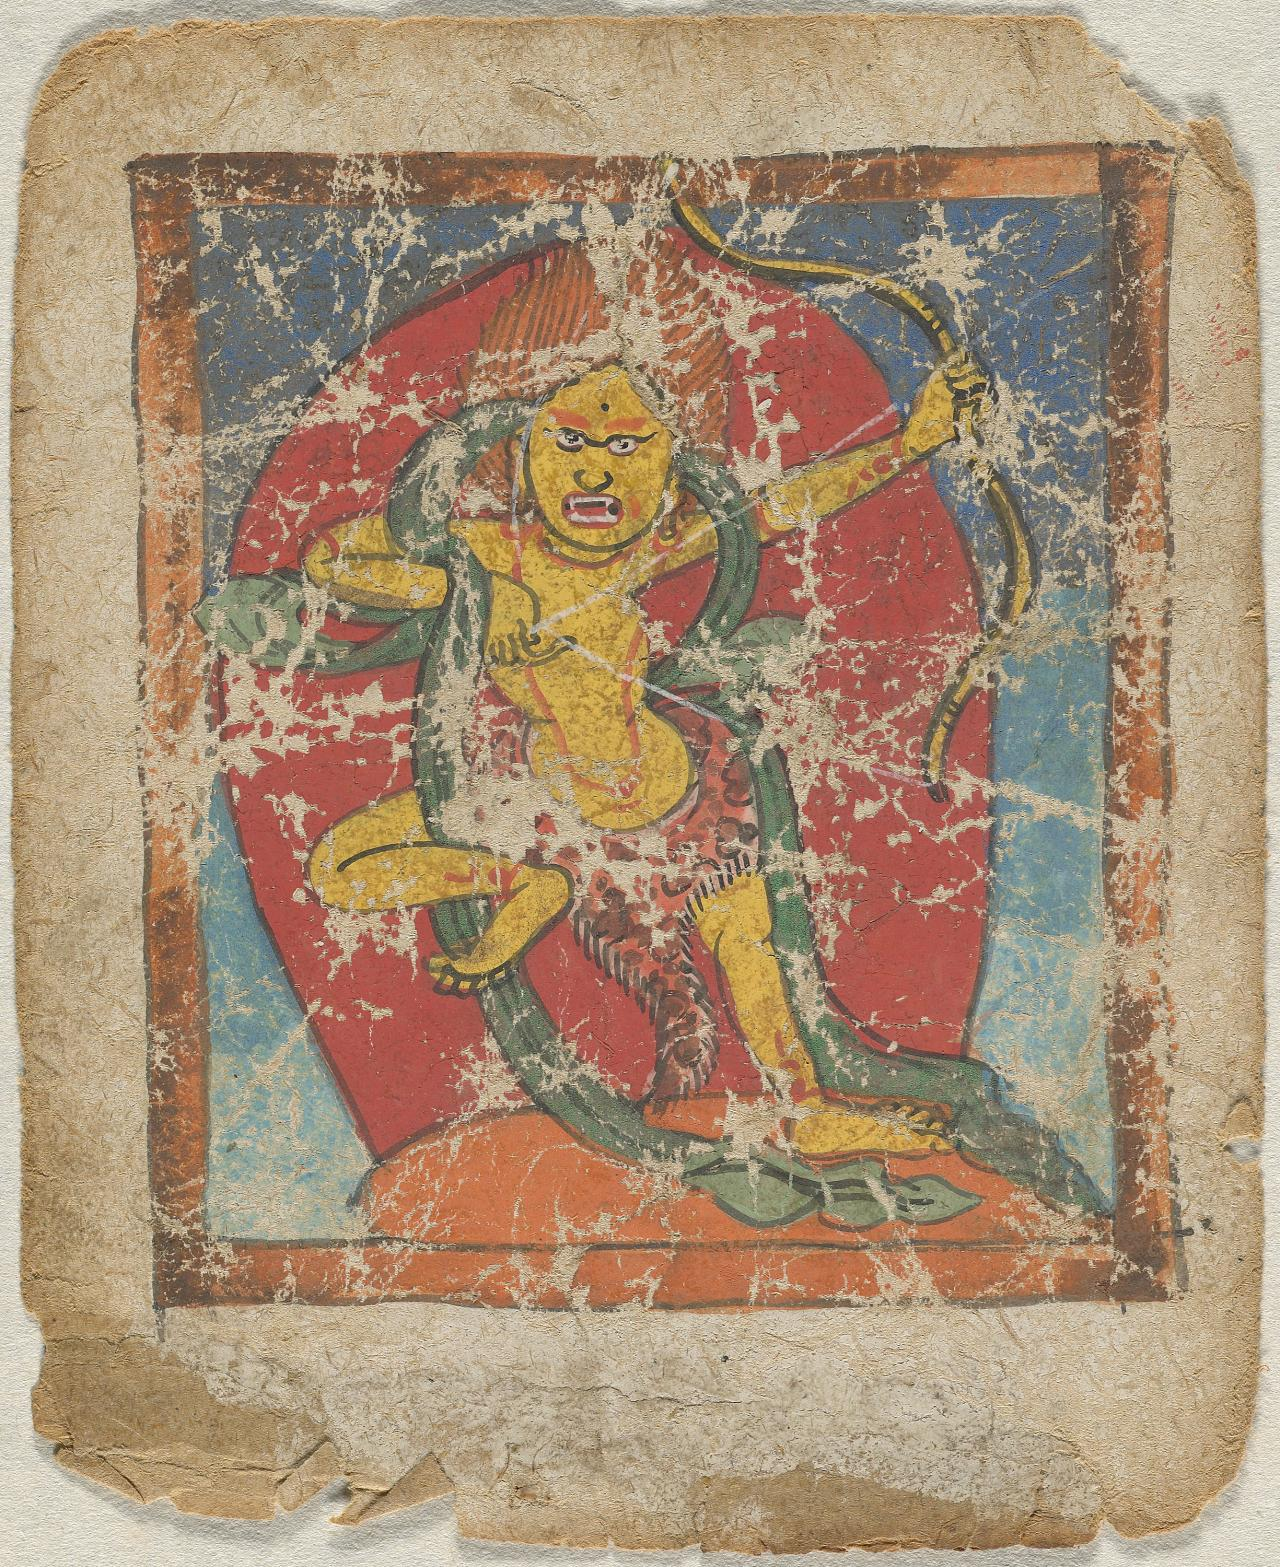 Tibetan religious painting (tsakli) depicting deity of the Bon religion